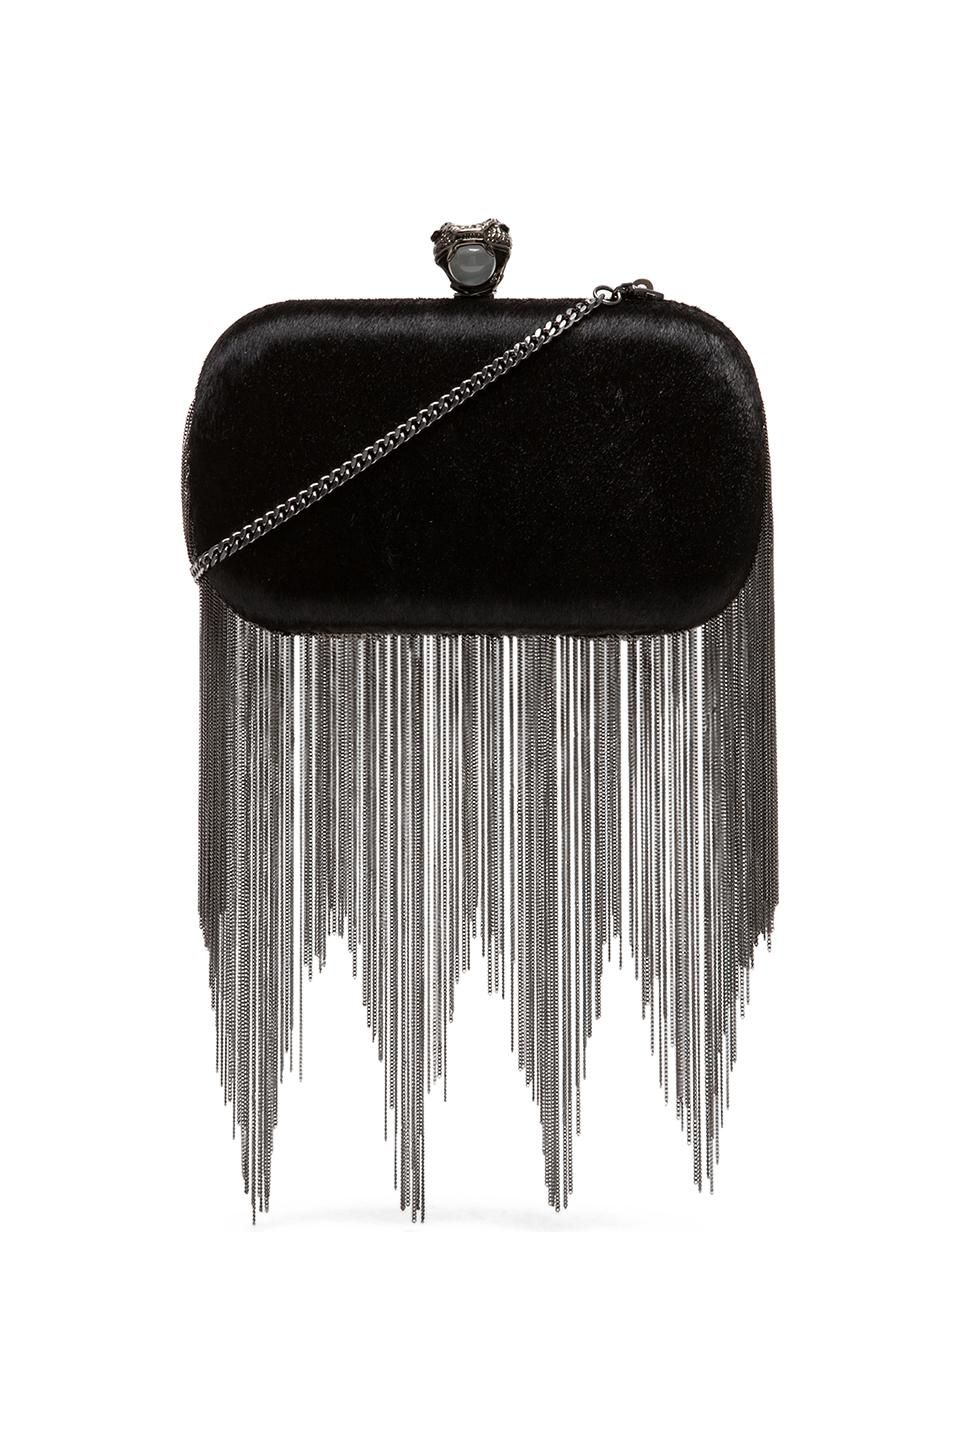 House of Harlow 1960 House of Harlow Jude Clutch in Black Haircalf